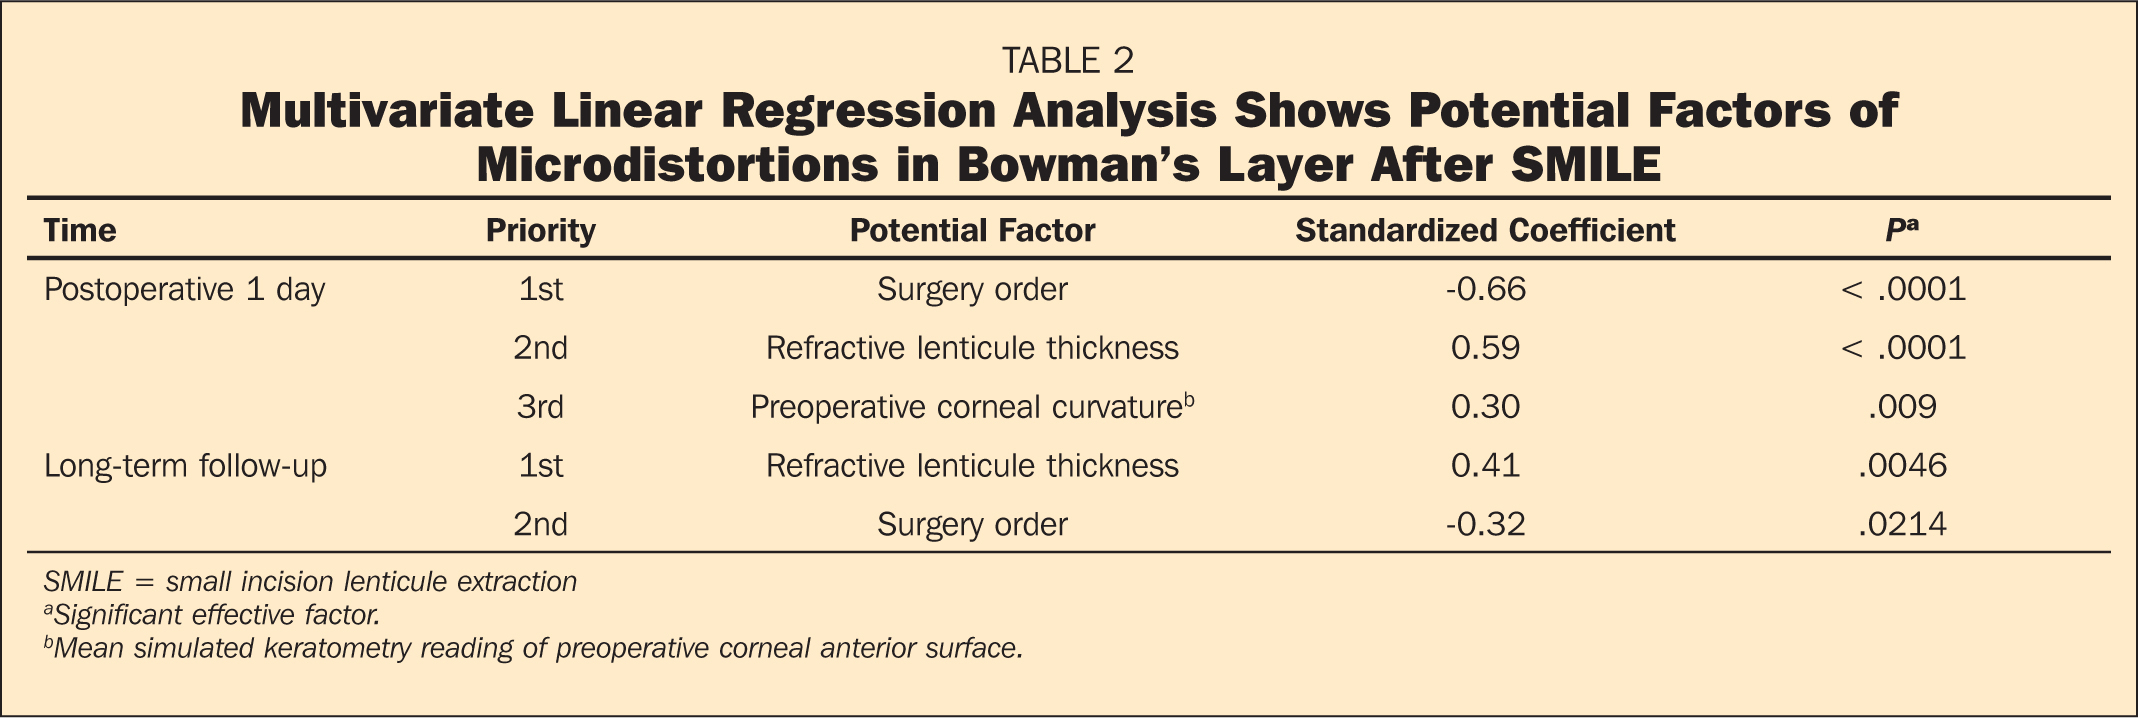 Multivariate Linear Regression Analysis Shows Potential Factors of Microdistortions in Bowman's Layer After SMILE